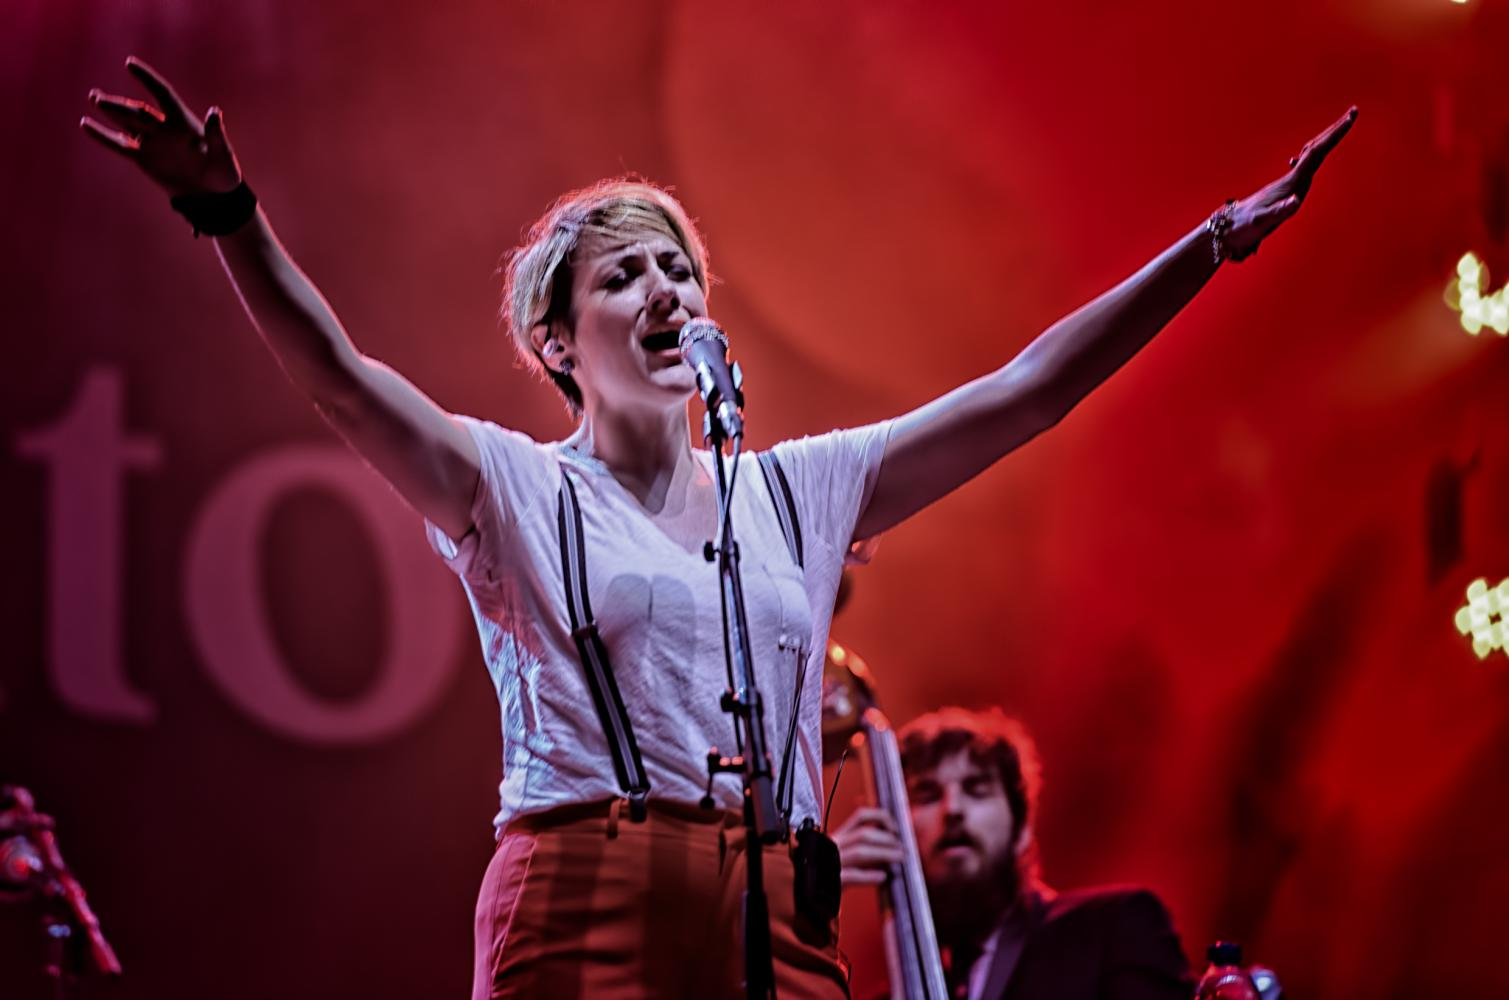 Elizabeth Bougerol with the Hot Sardines at The Montreal International Jazz Festival 2016